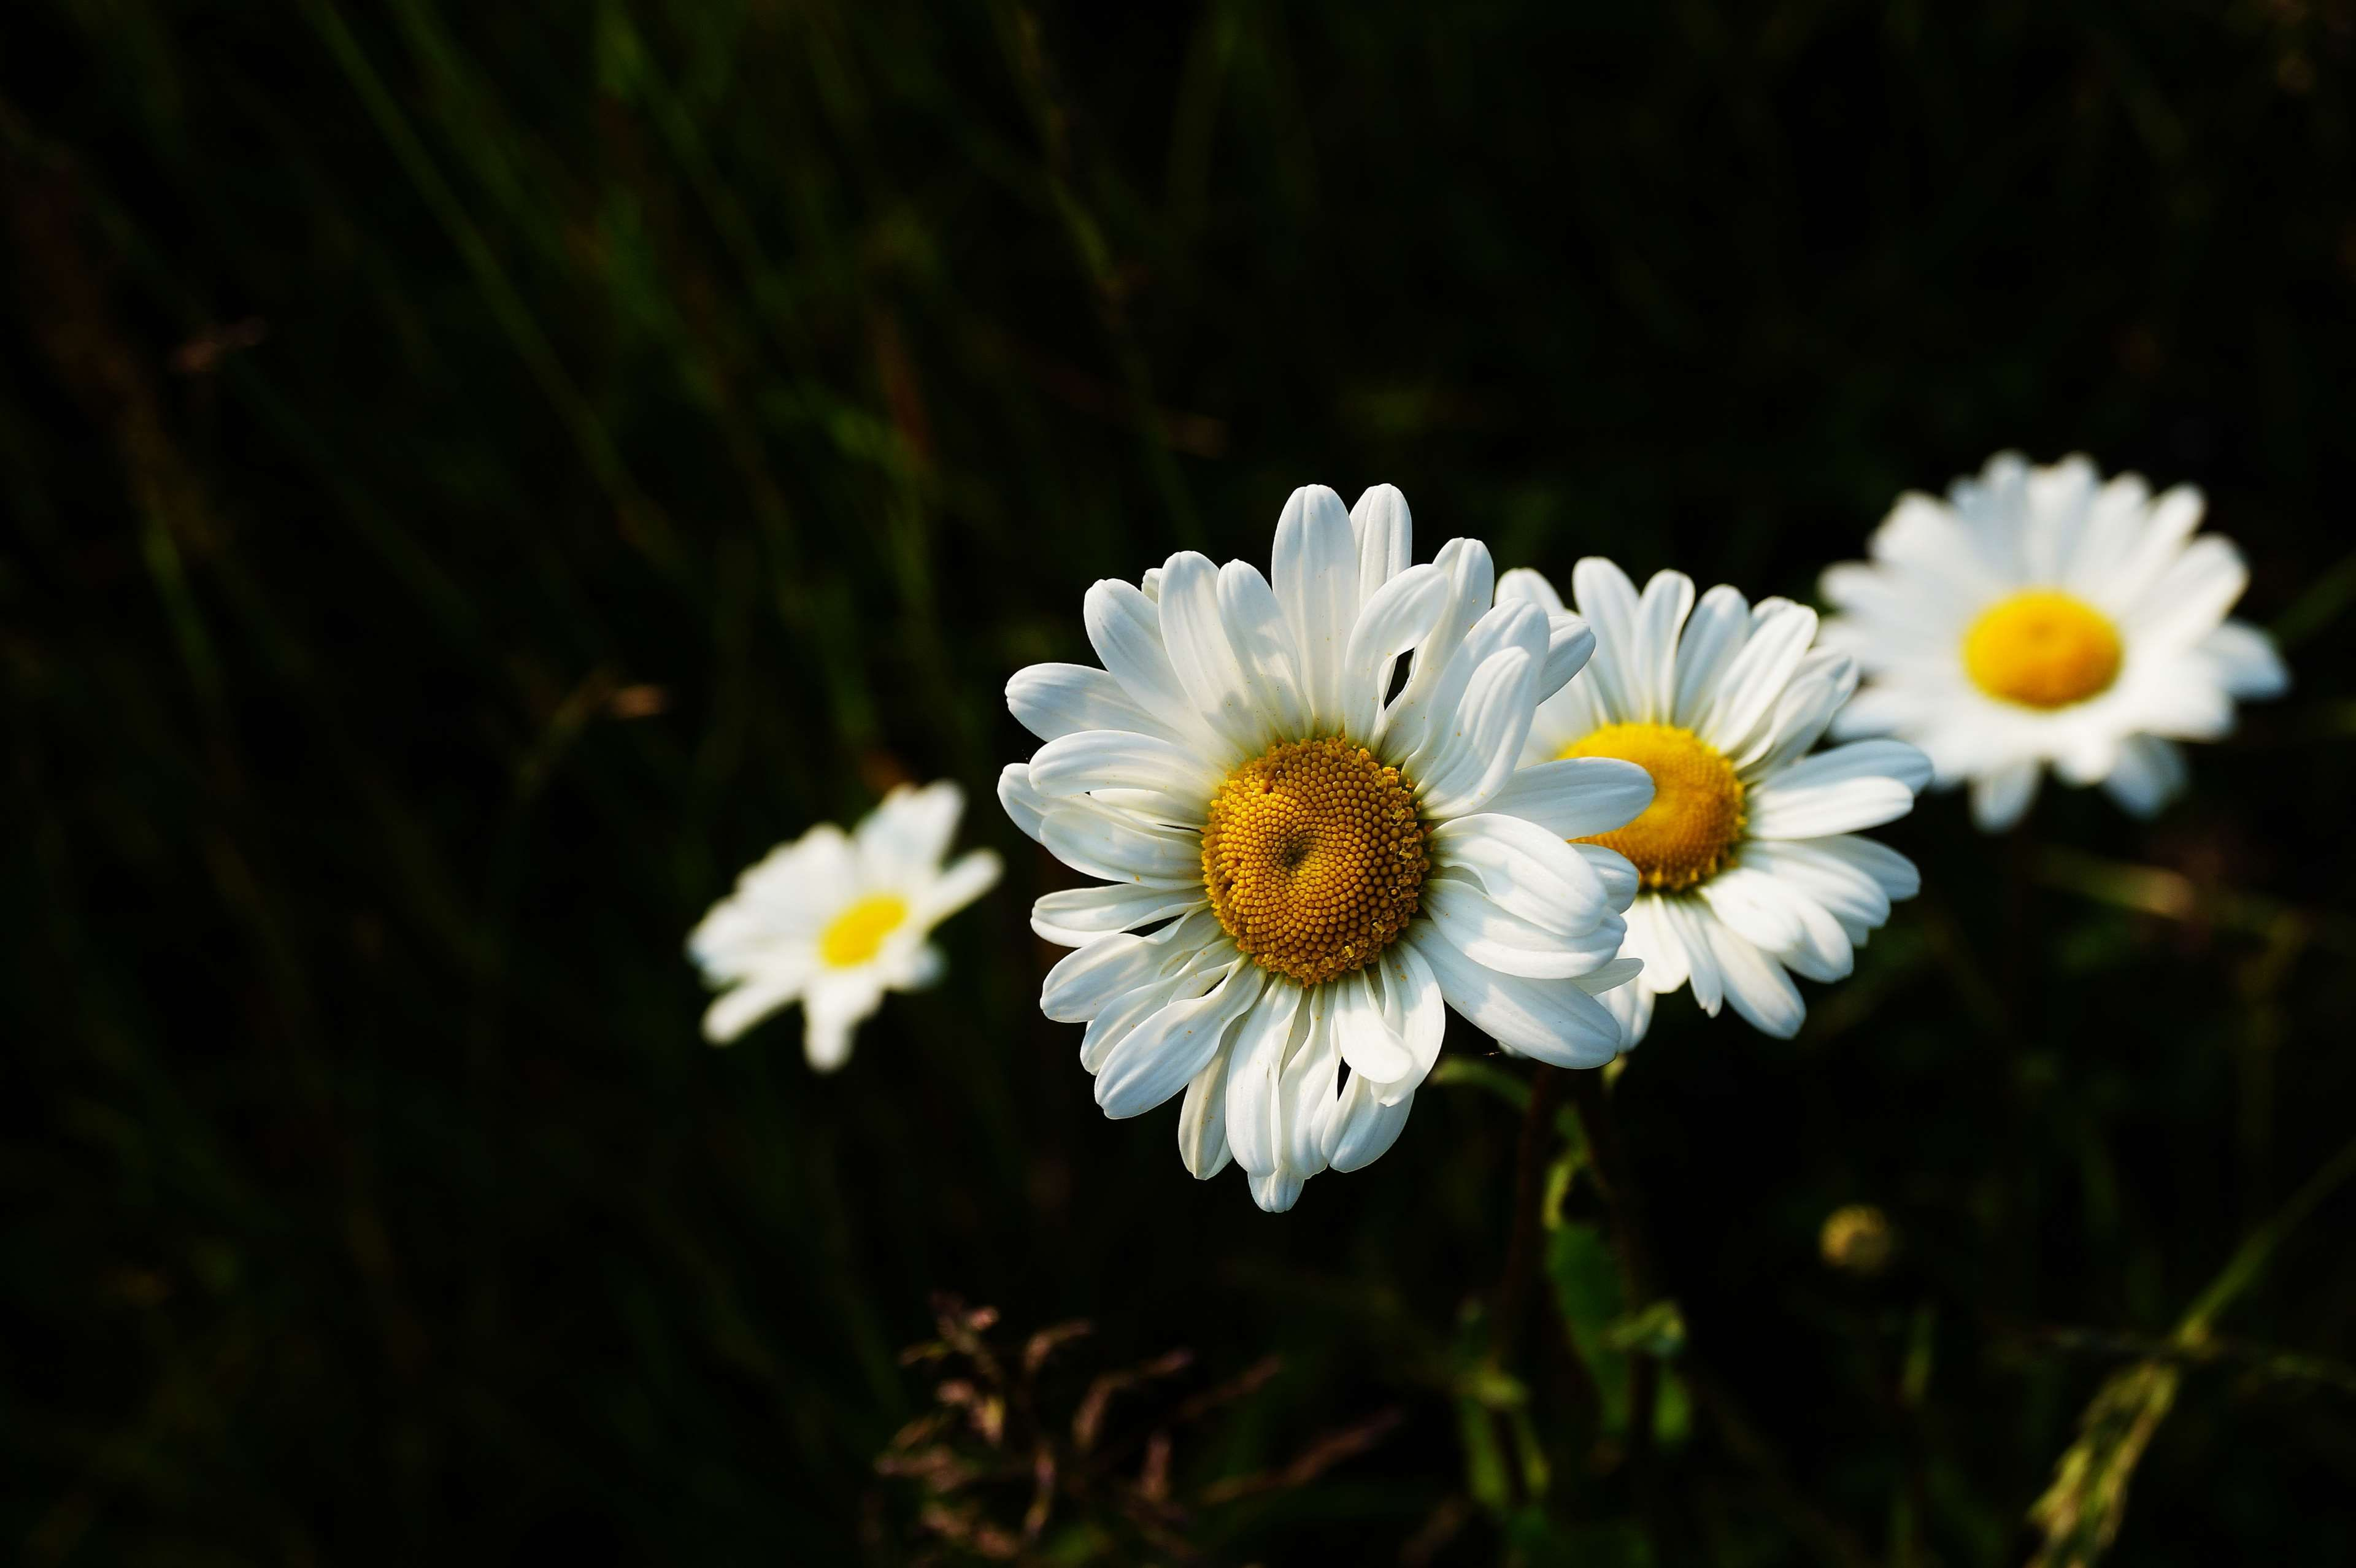 bloom blooming blossom blur chamomile close up colors 3840x2556